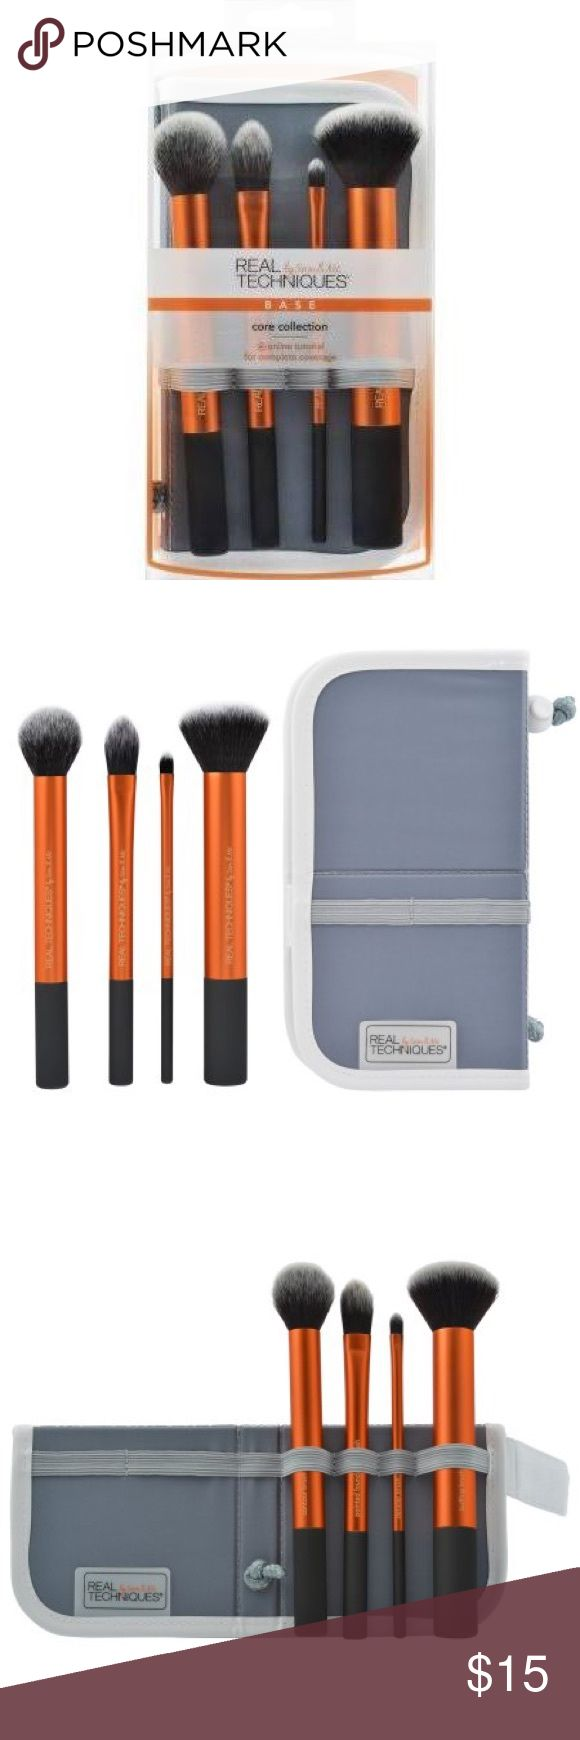 Real Techniques Brush Set Real Techniques (by Sam & Nic) Core Collection Makeup Brushes  Includes: - Contour brush - Pointed foundation brush - Detailed brush - Buffing brush - Panoramic case (dual carrier and stand) Real Techniques Makeup Brushes & Tools